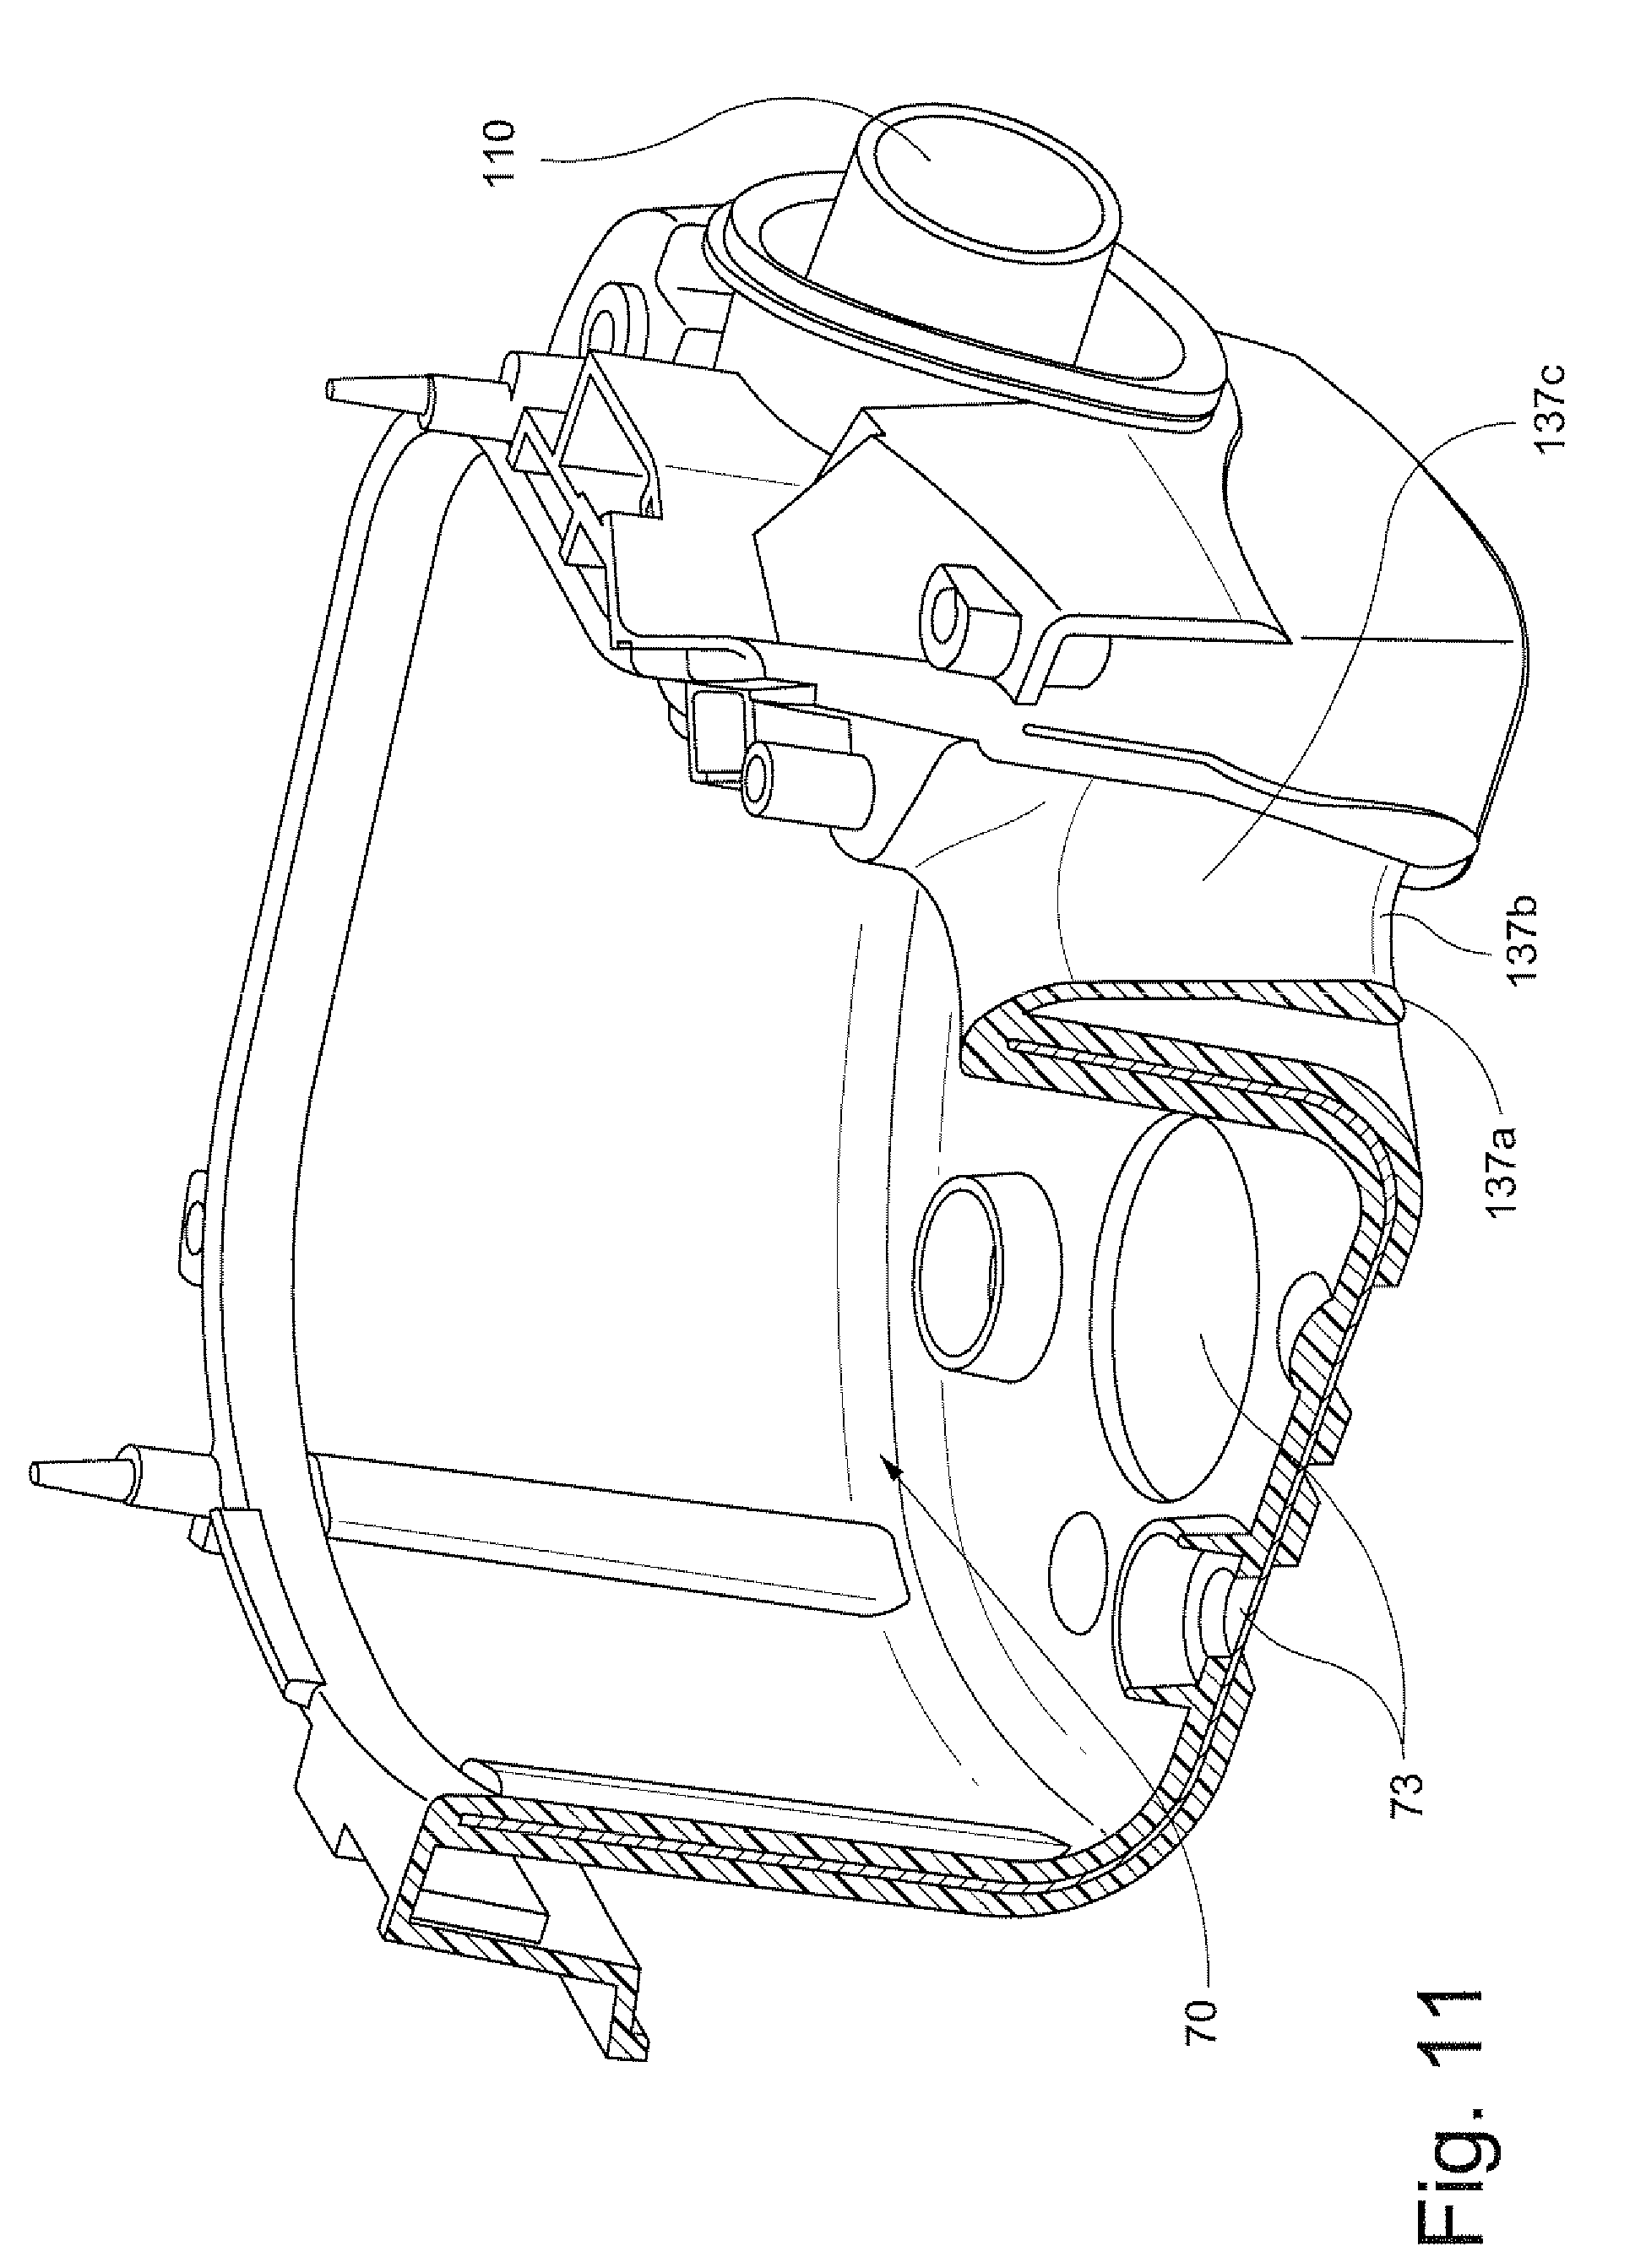 additionally patent us8020551 breathable gas apparatus with humidifier #434343